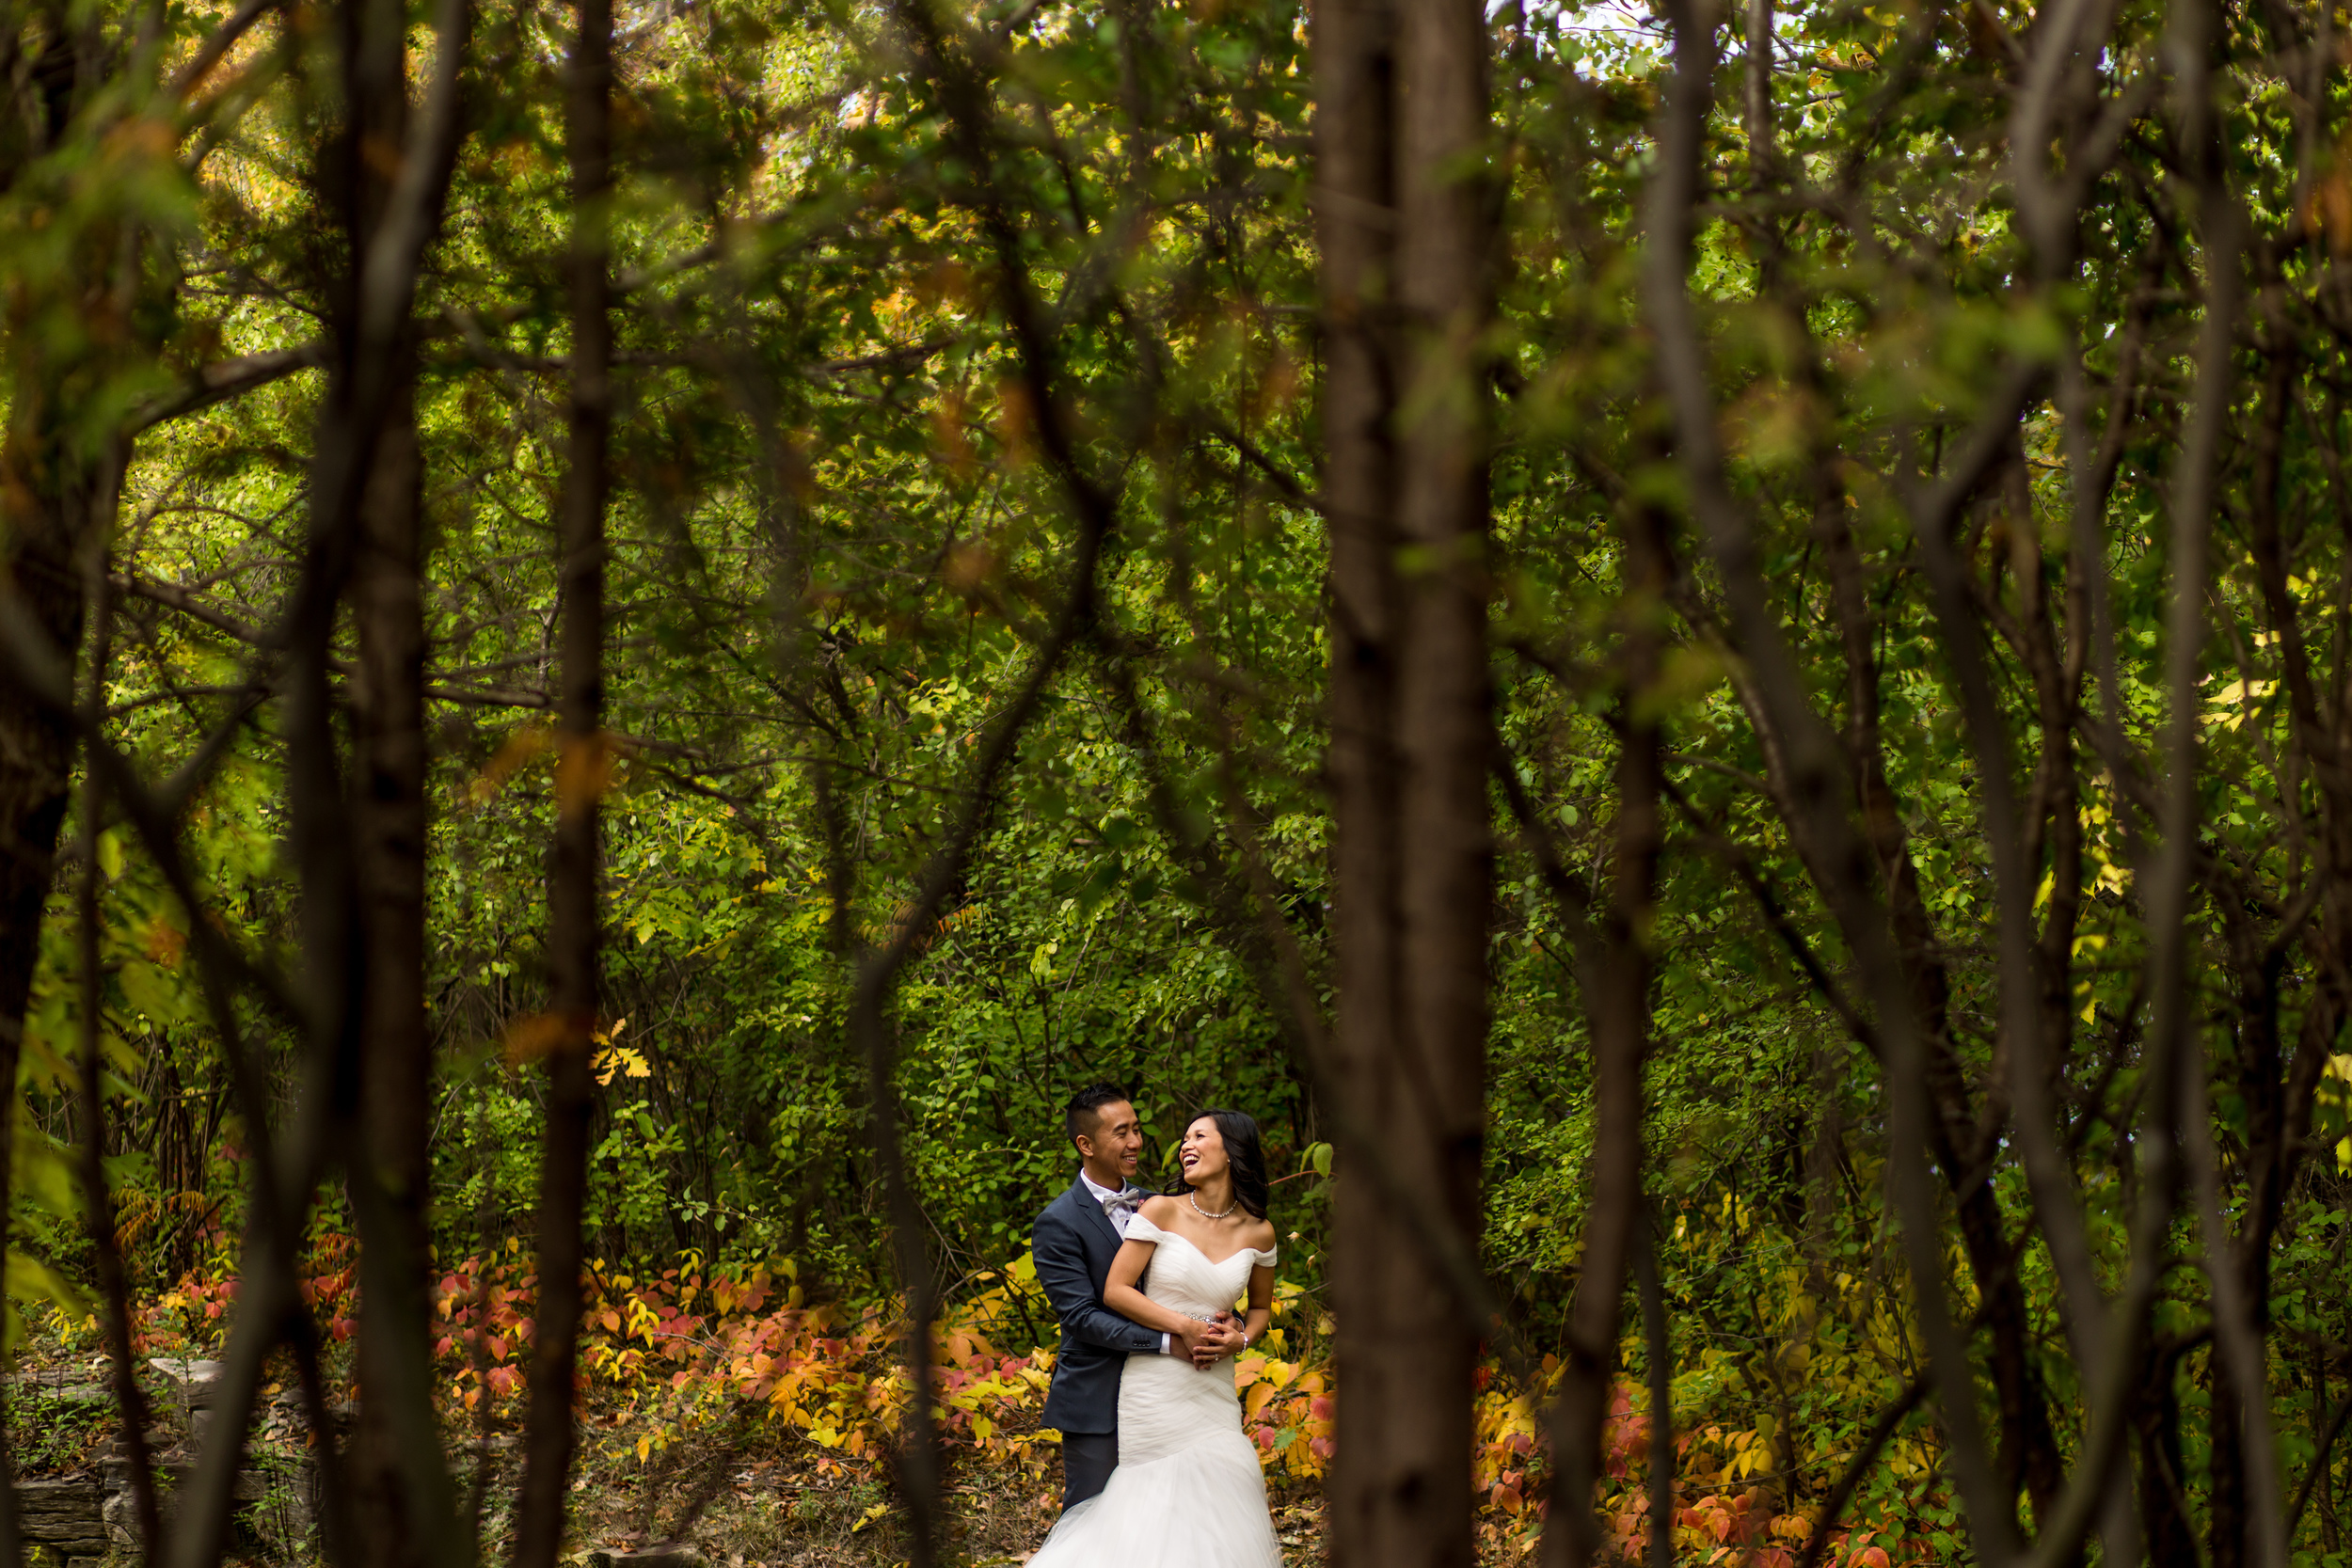 Photo of the bride and groom together outside in the forest